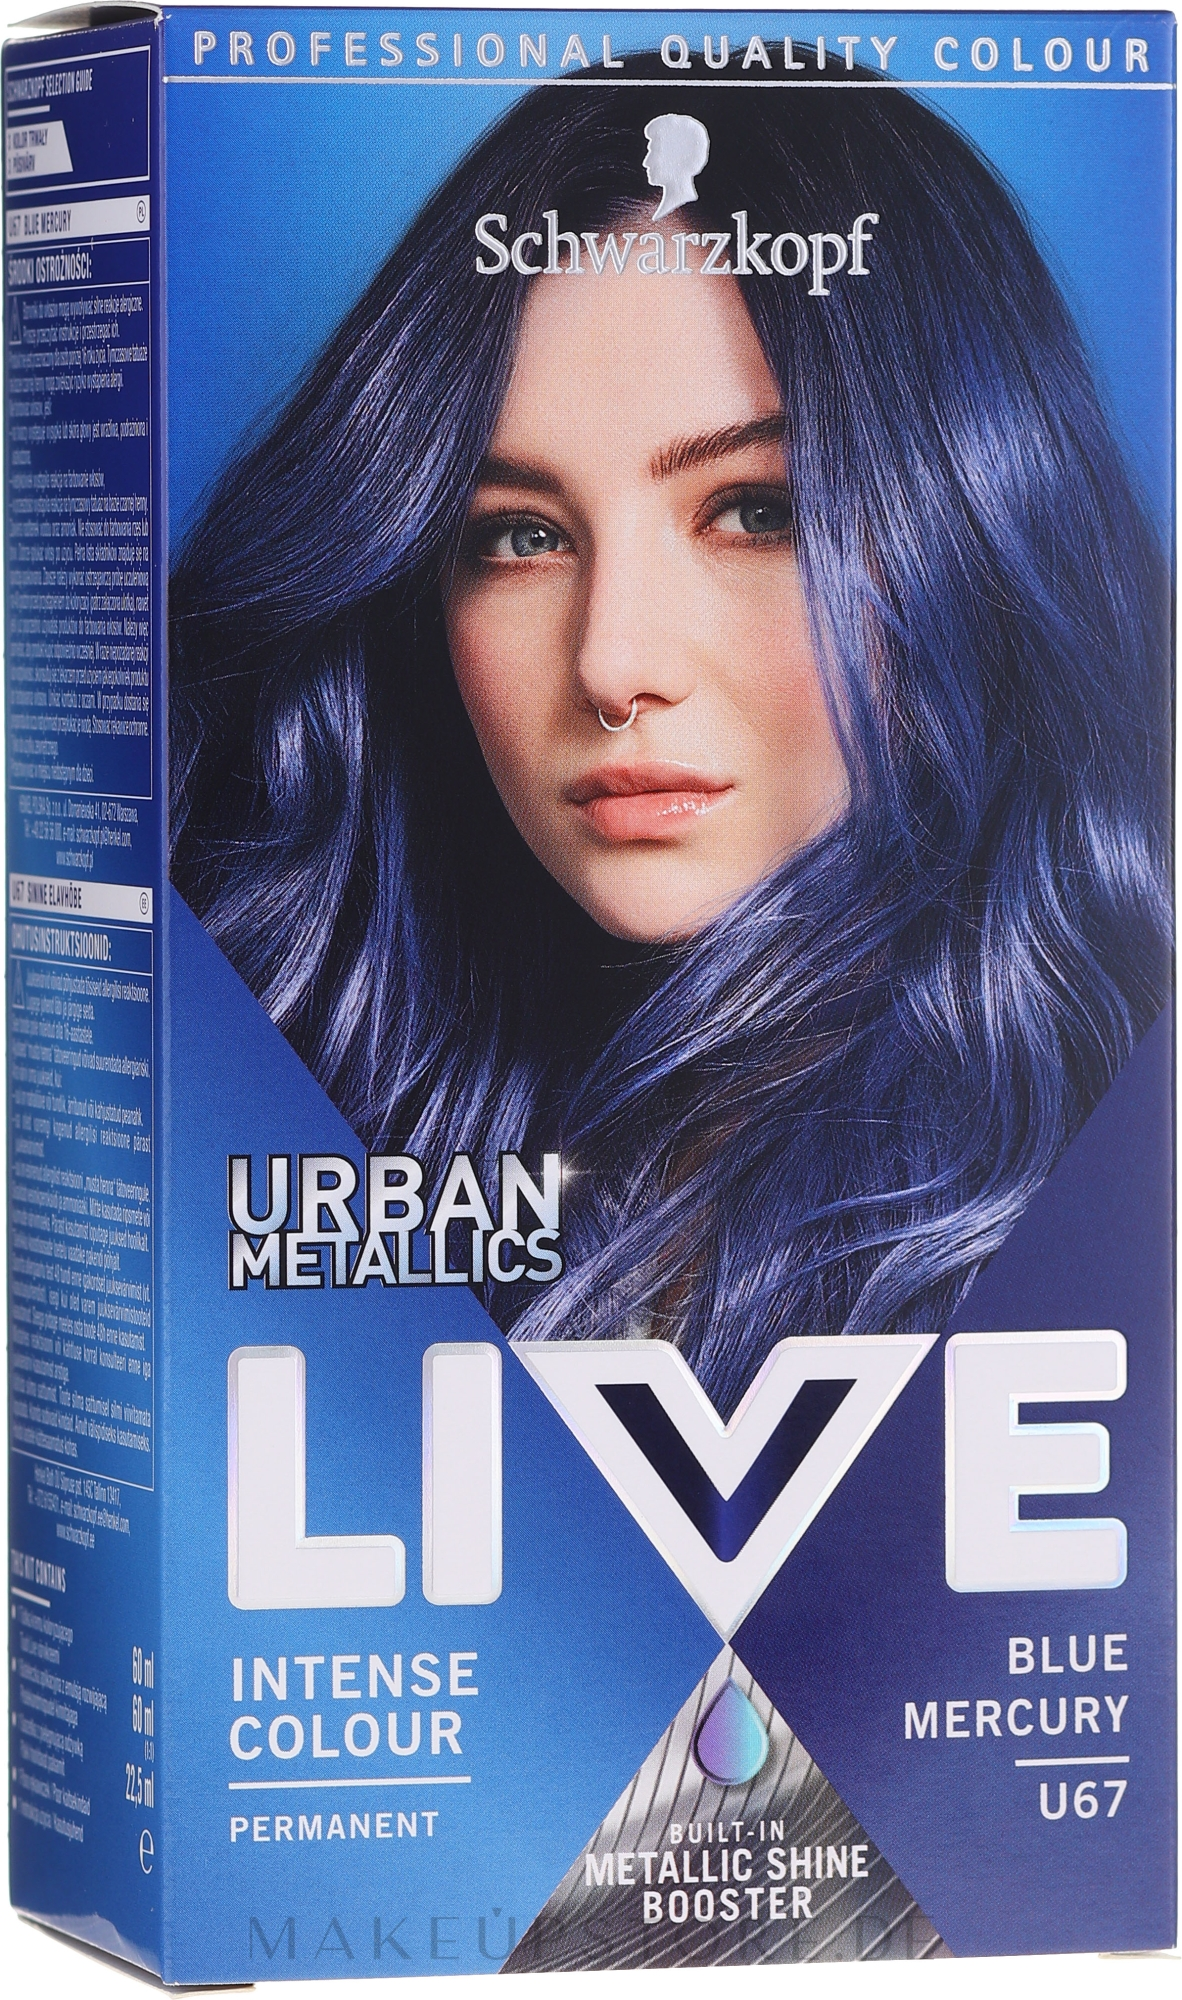 Haarfarbe - Schwarzkopf Live Urban Metallics Intense Colour — Bild U67 - Blue Mercury